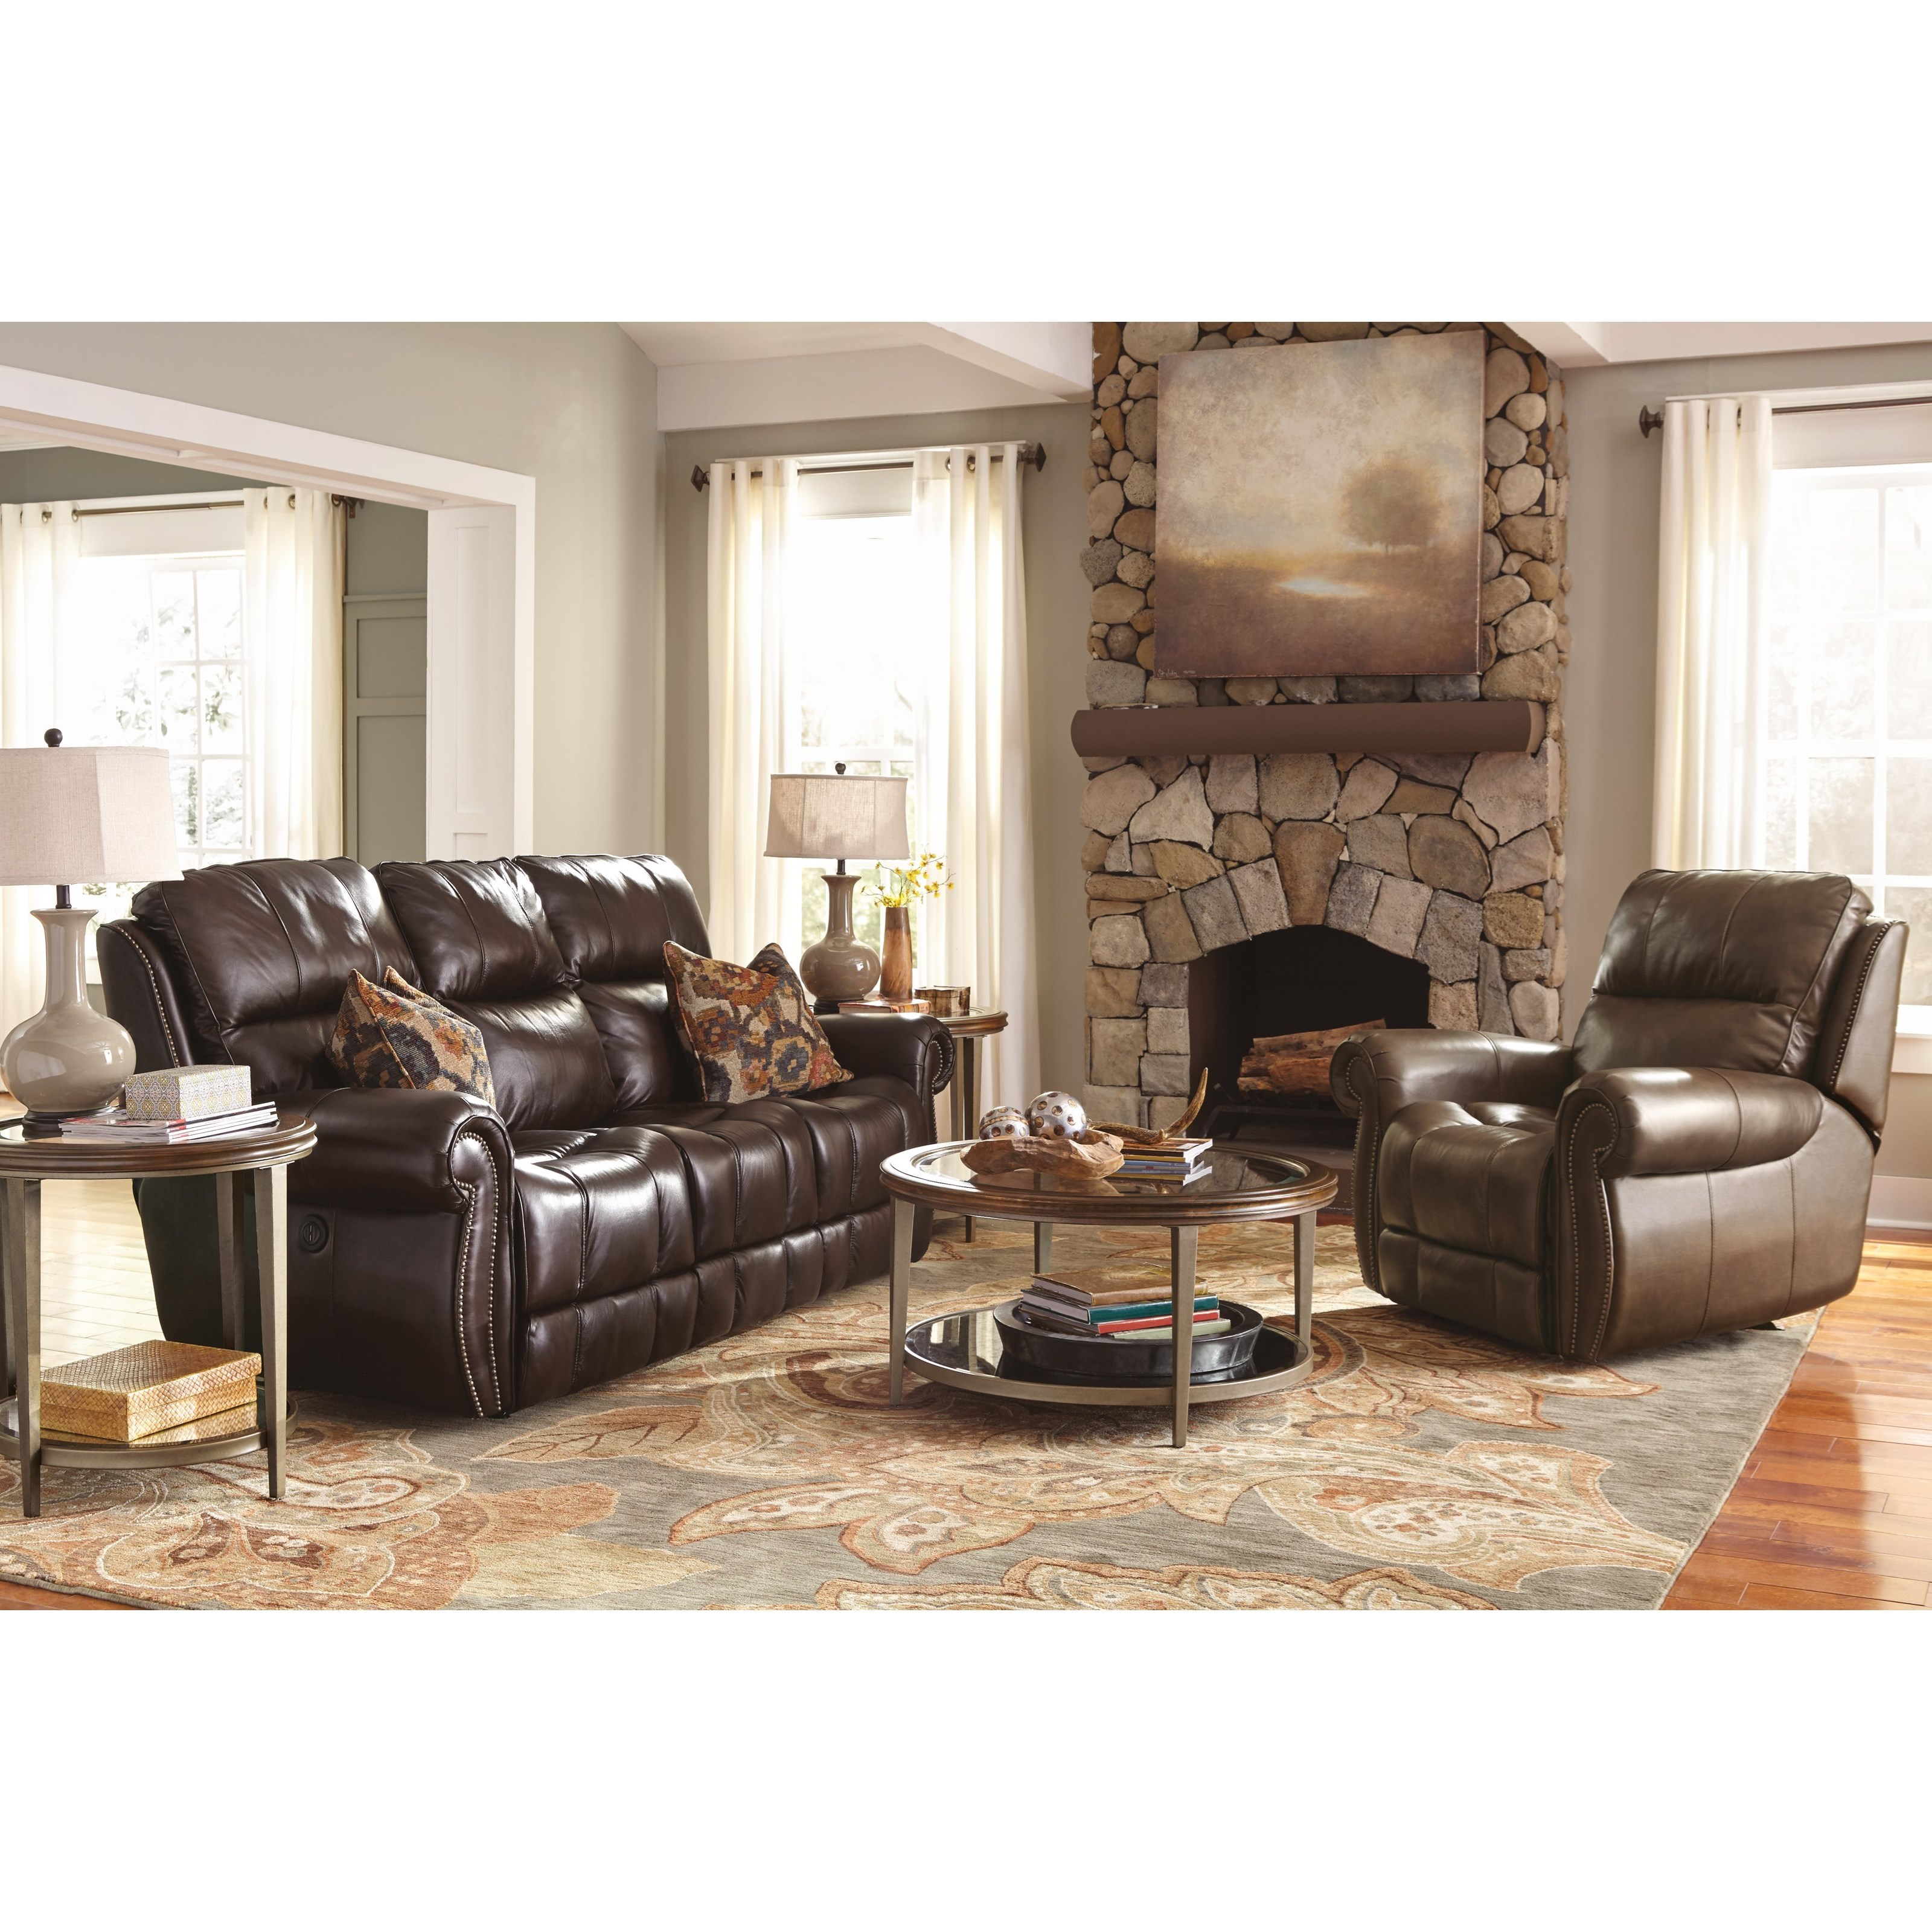 Flexsteel Latitudes - Maxwell Power Living Room Group - Item Number: 1603 Living Room Group 2